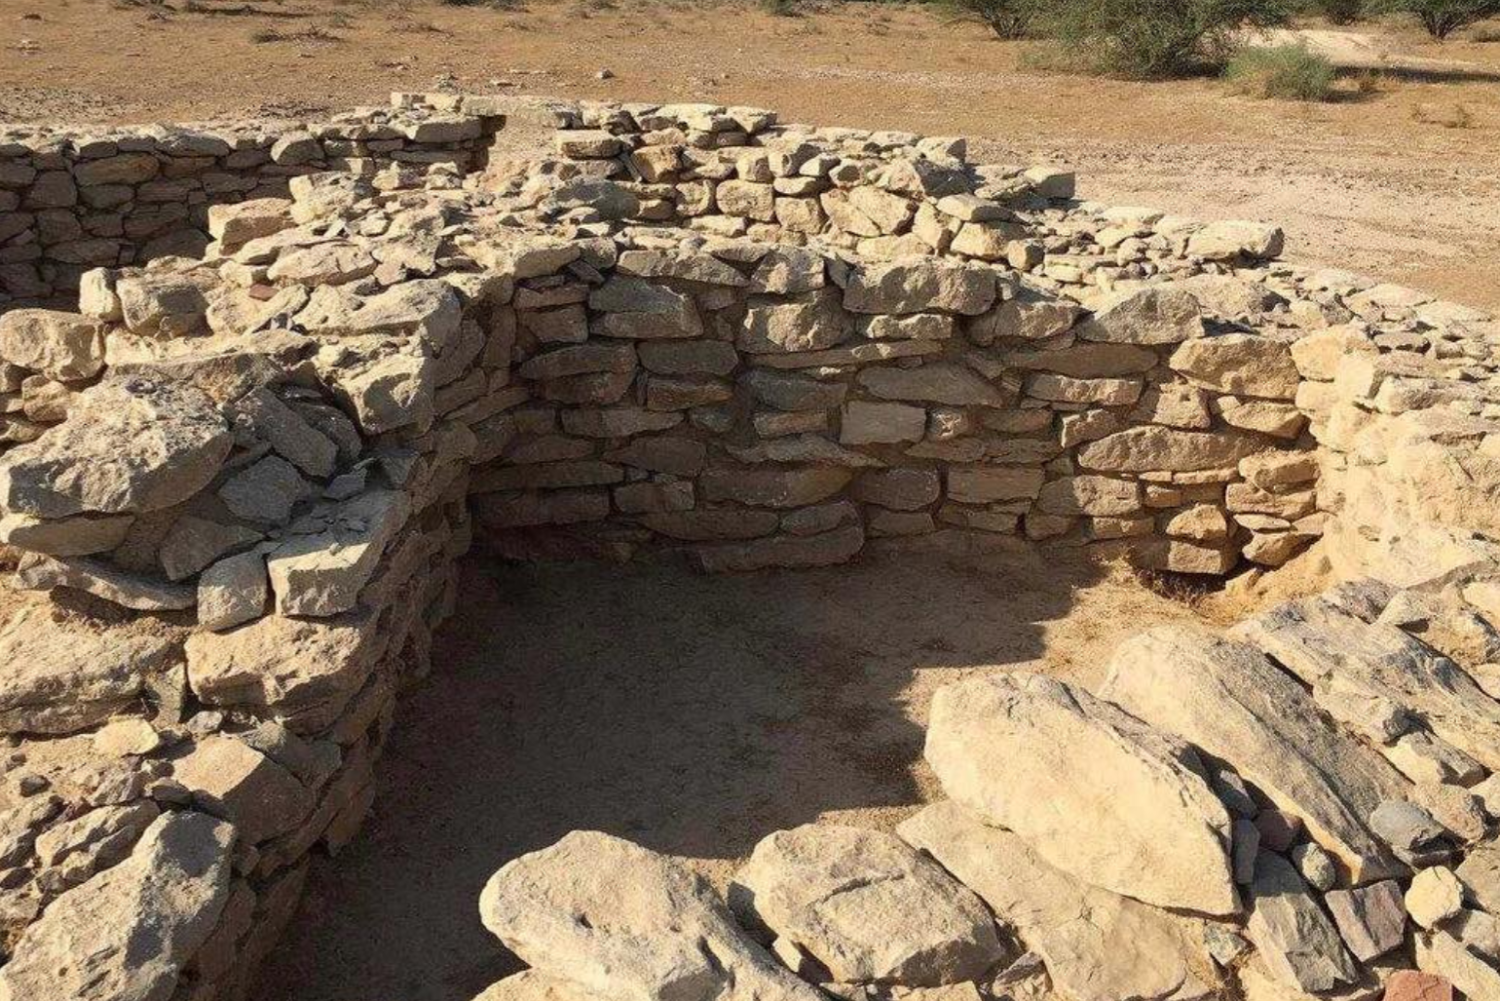 Public tours of one of the oldest archaeological sites in the UAE have begun